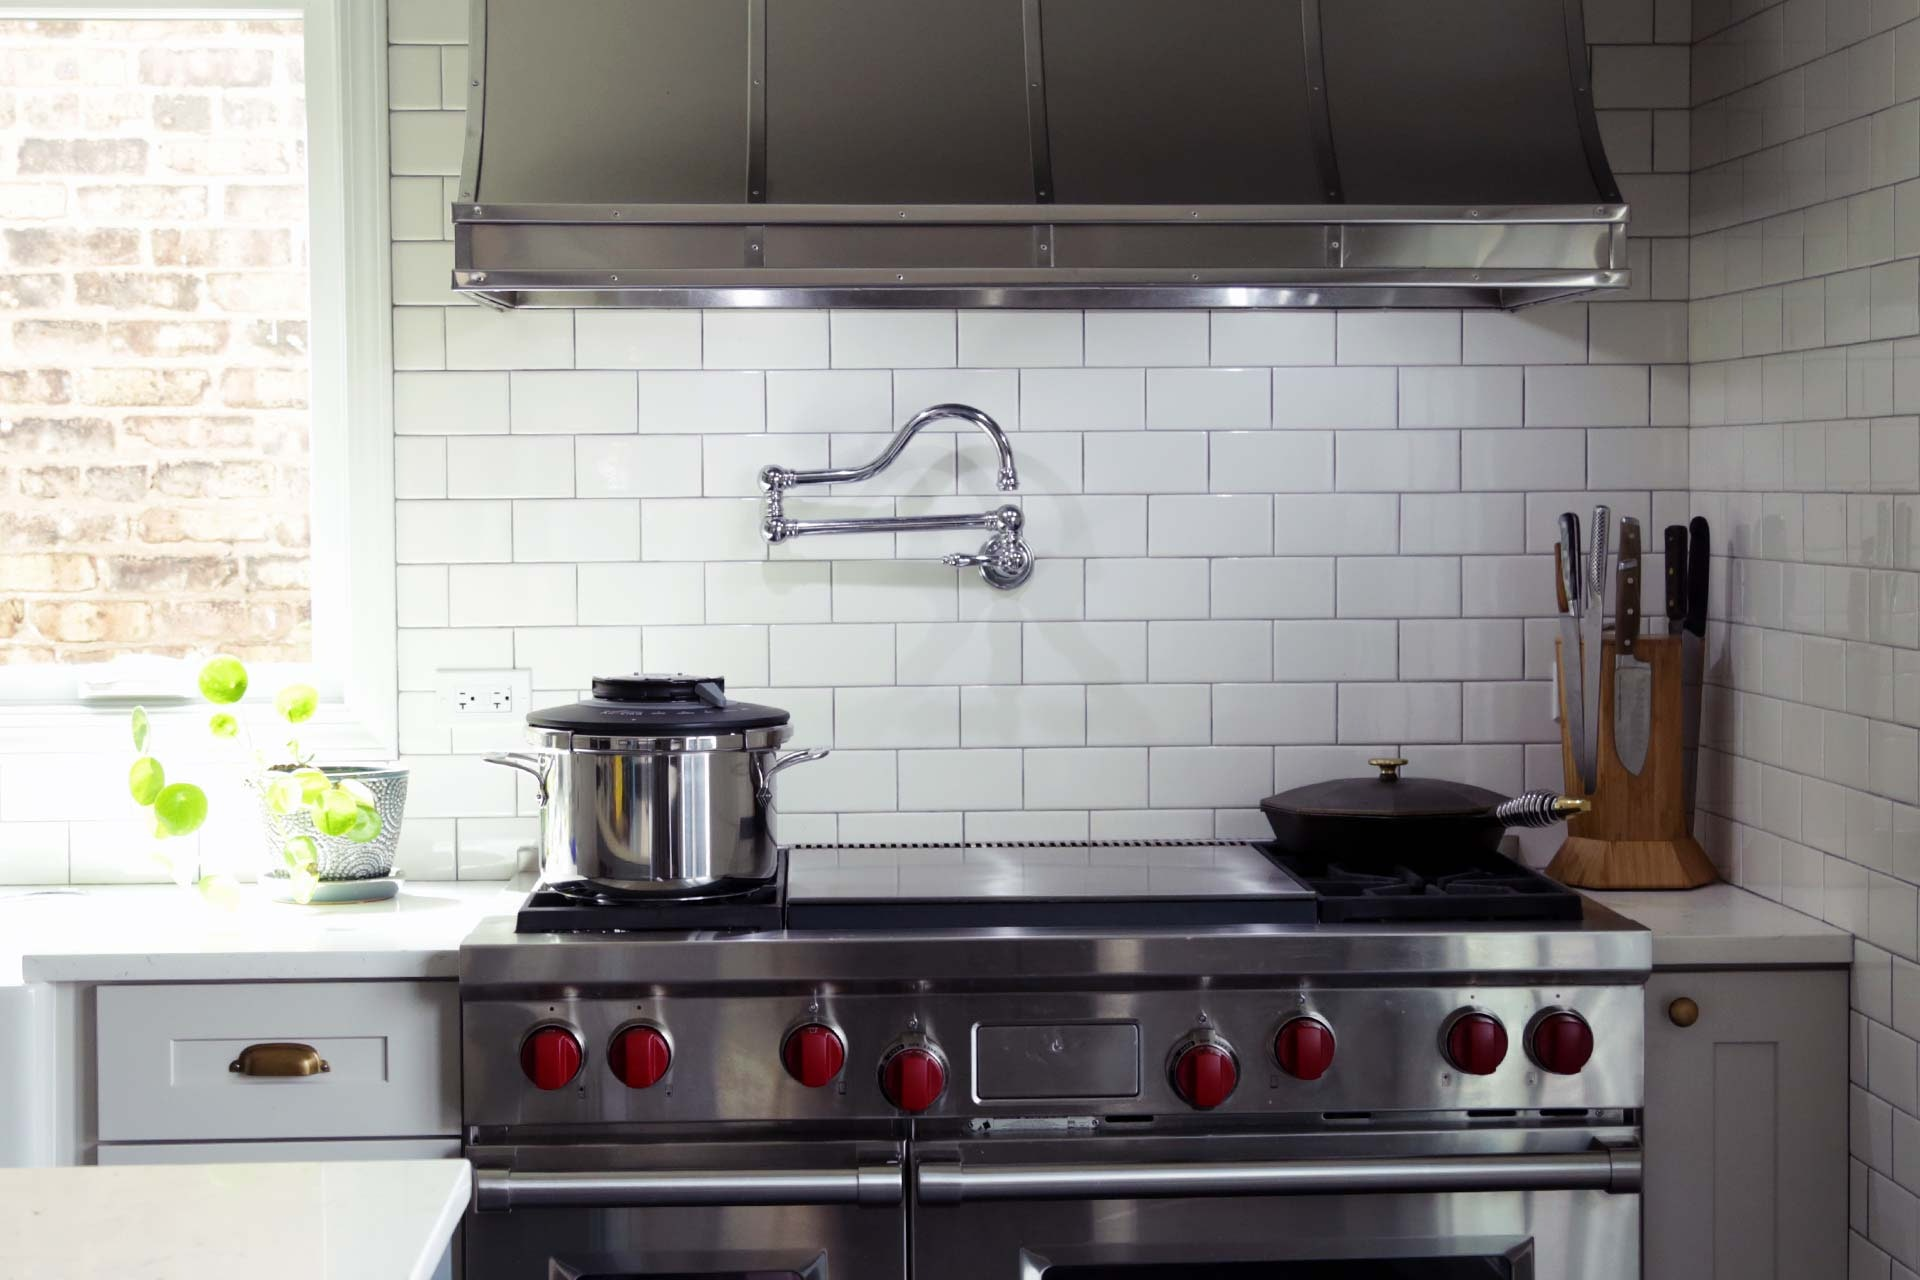 Why You Need a Pressure Cooker